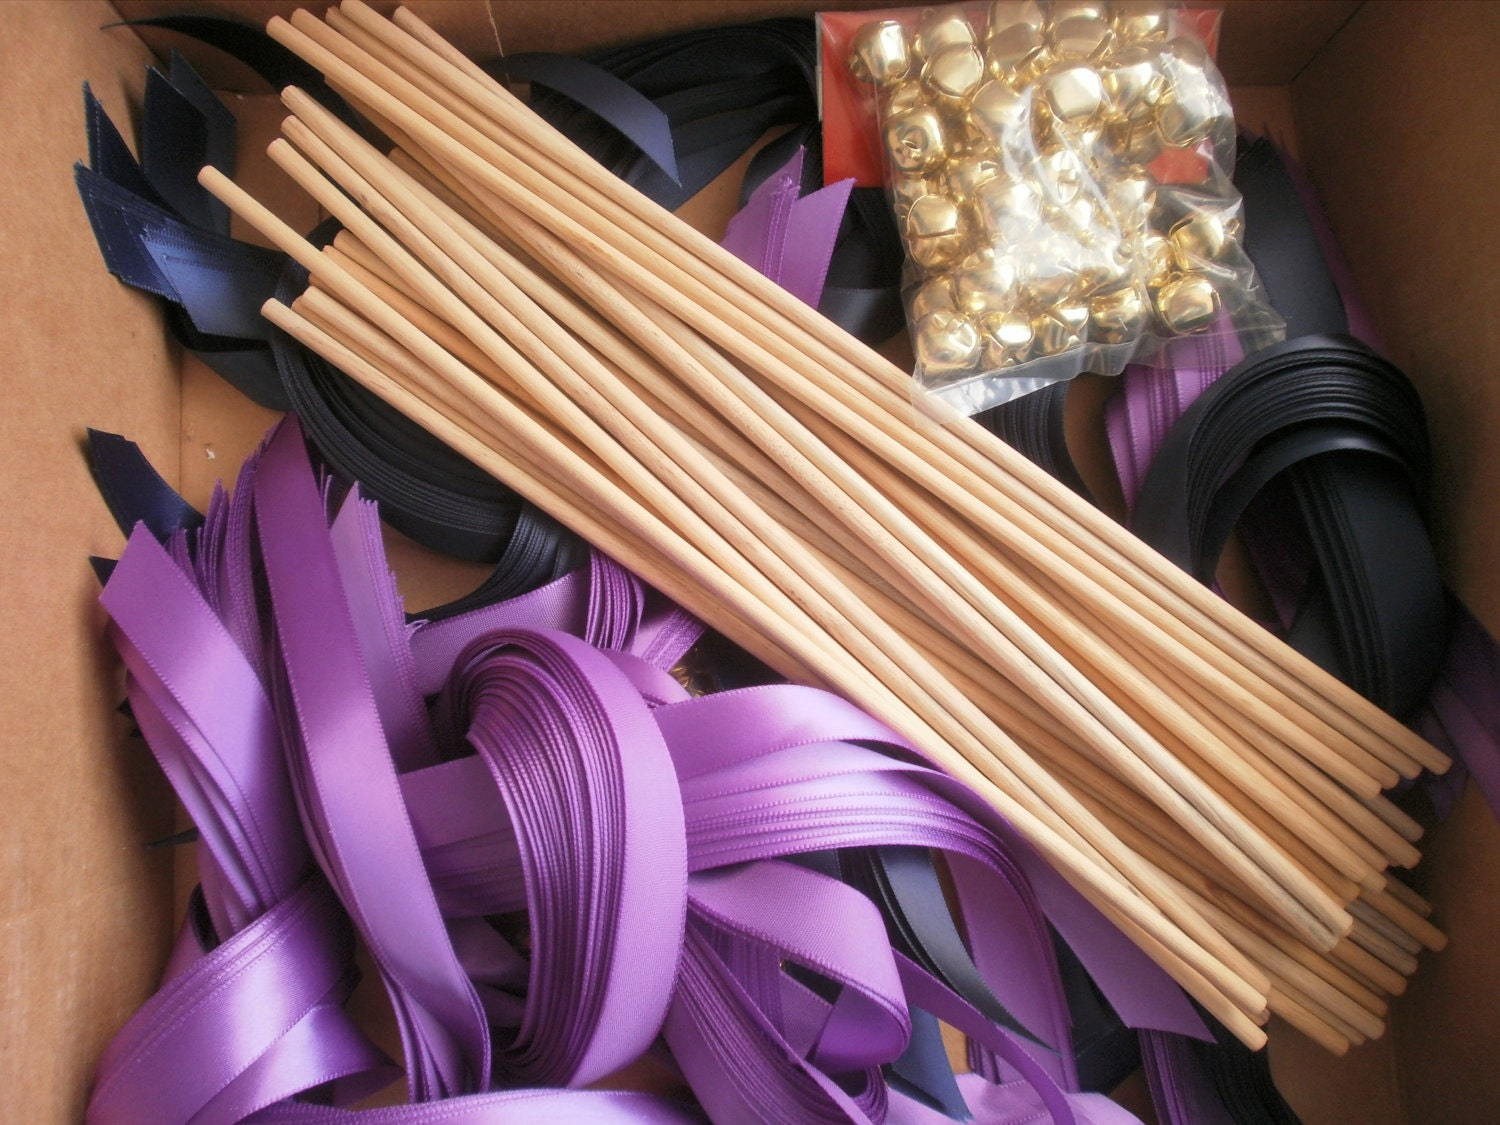 Diy bride 75 satin ribbon wands lace wands wedding wands for Wand making kit